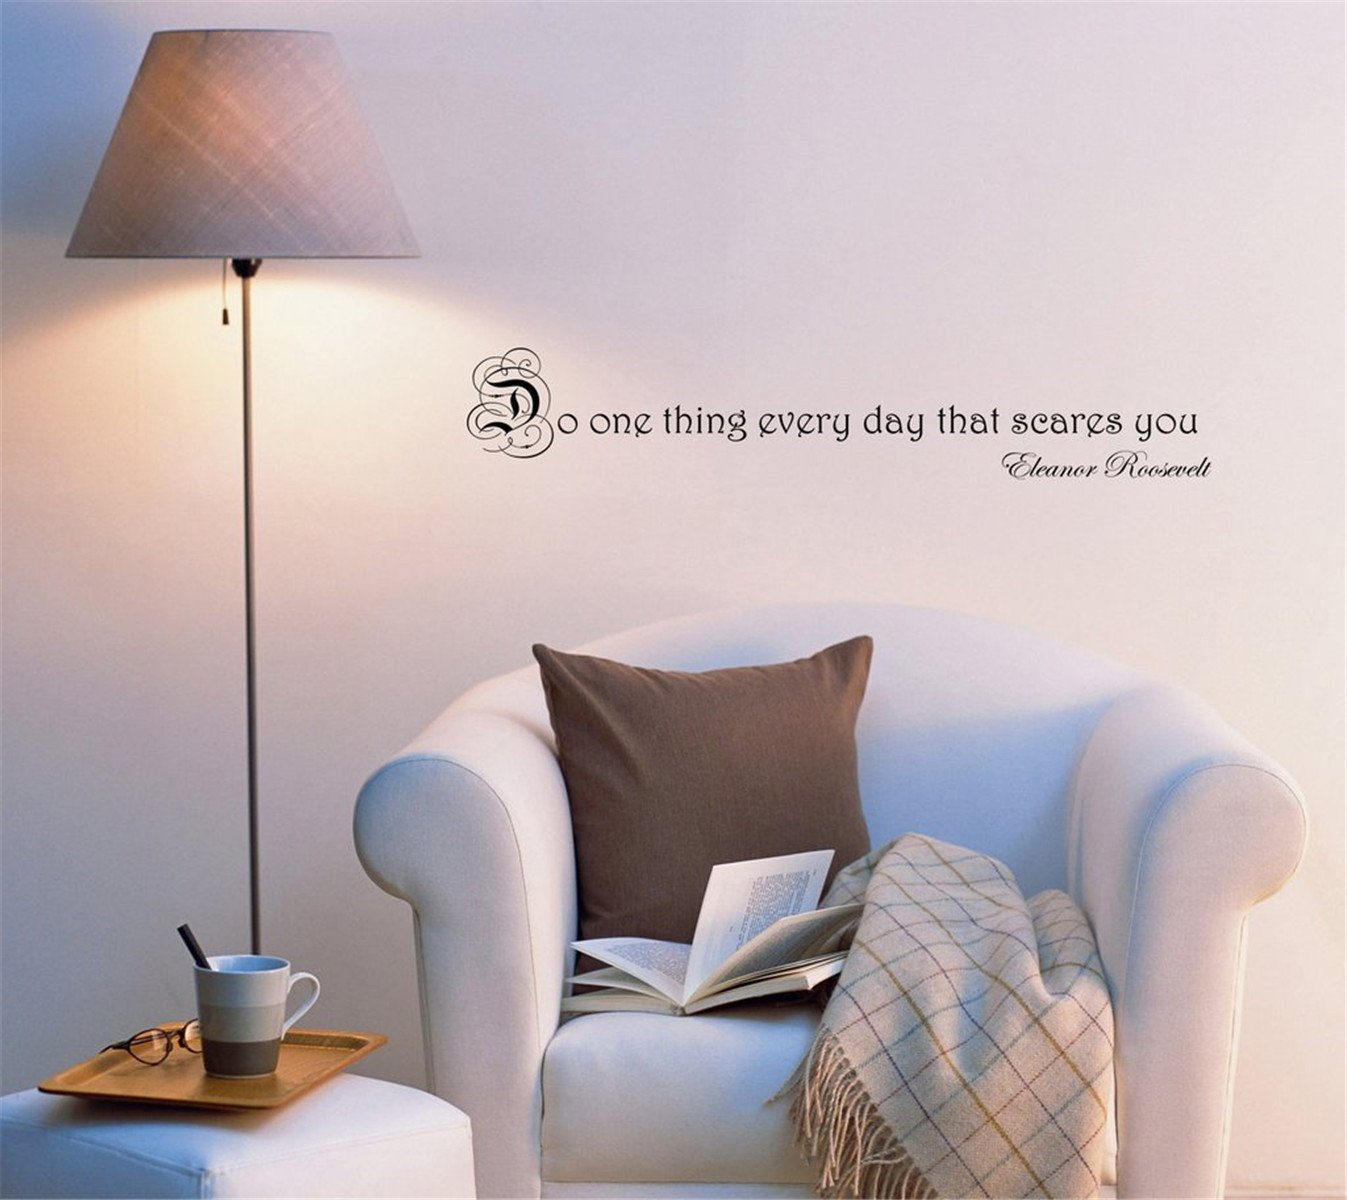 BorisMotley Wall Decal Do One Thing Every Day That Scares You Vinyl Removable Mural Art Decoration Stickers for Home Bedroom Nursery Living Room Kitchen